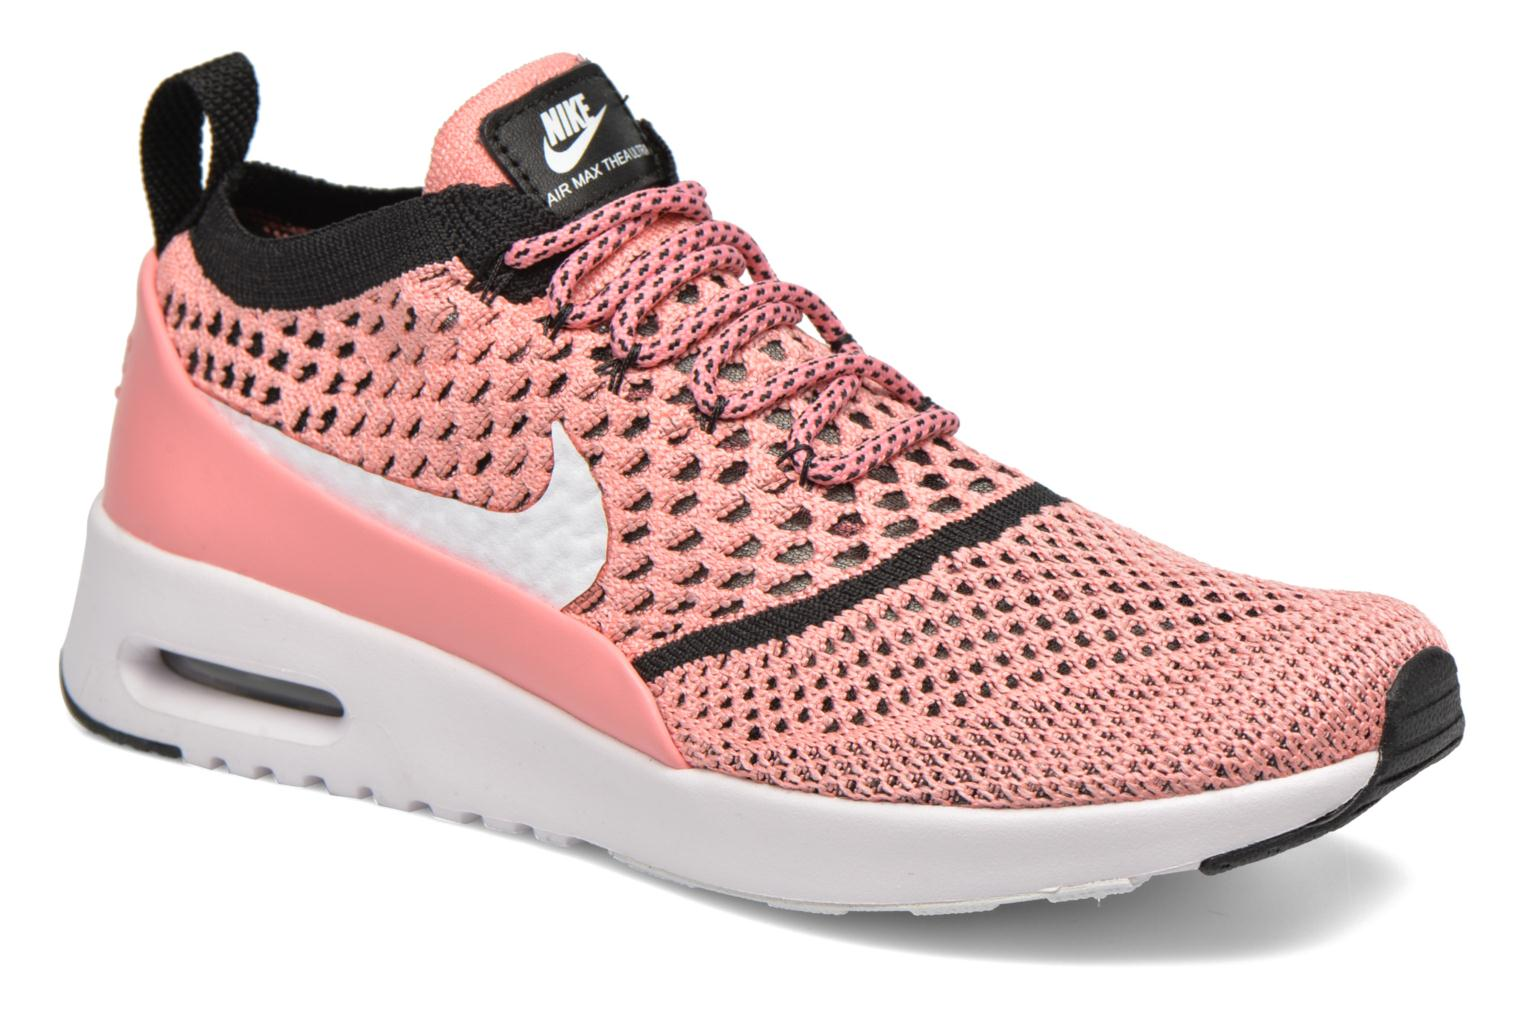 6aa65dbef18a98 ... sweden trainers nike w nike air max thea ultra fk pink detailed view  pair view f6f90 ...